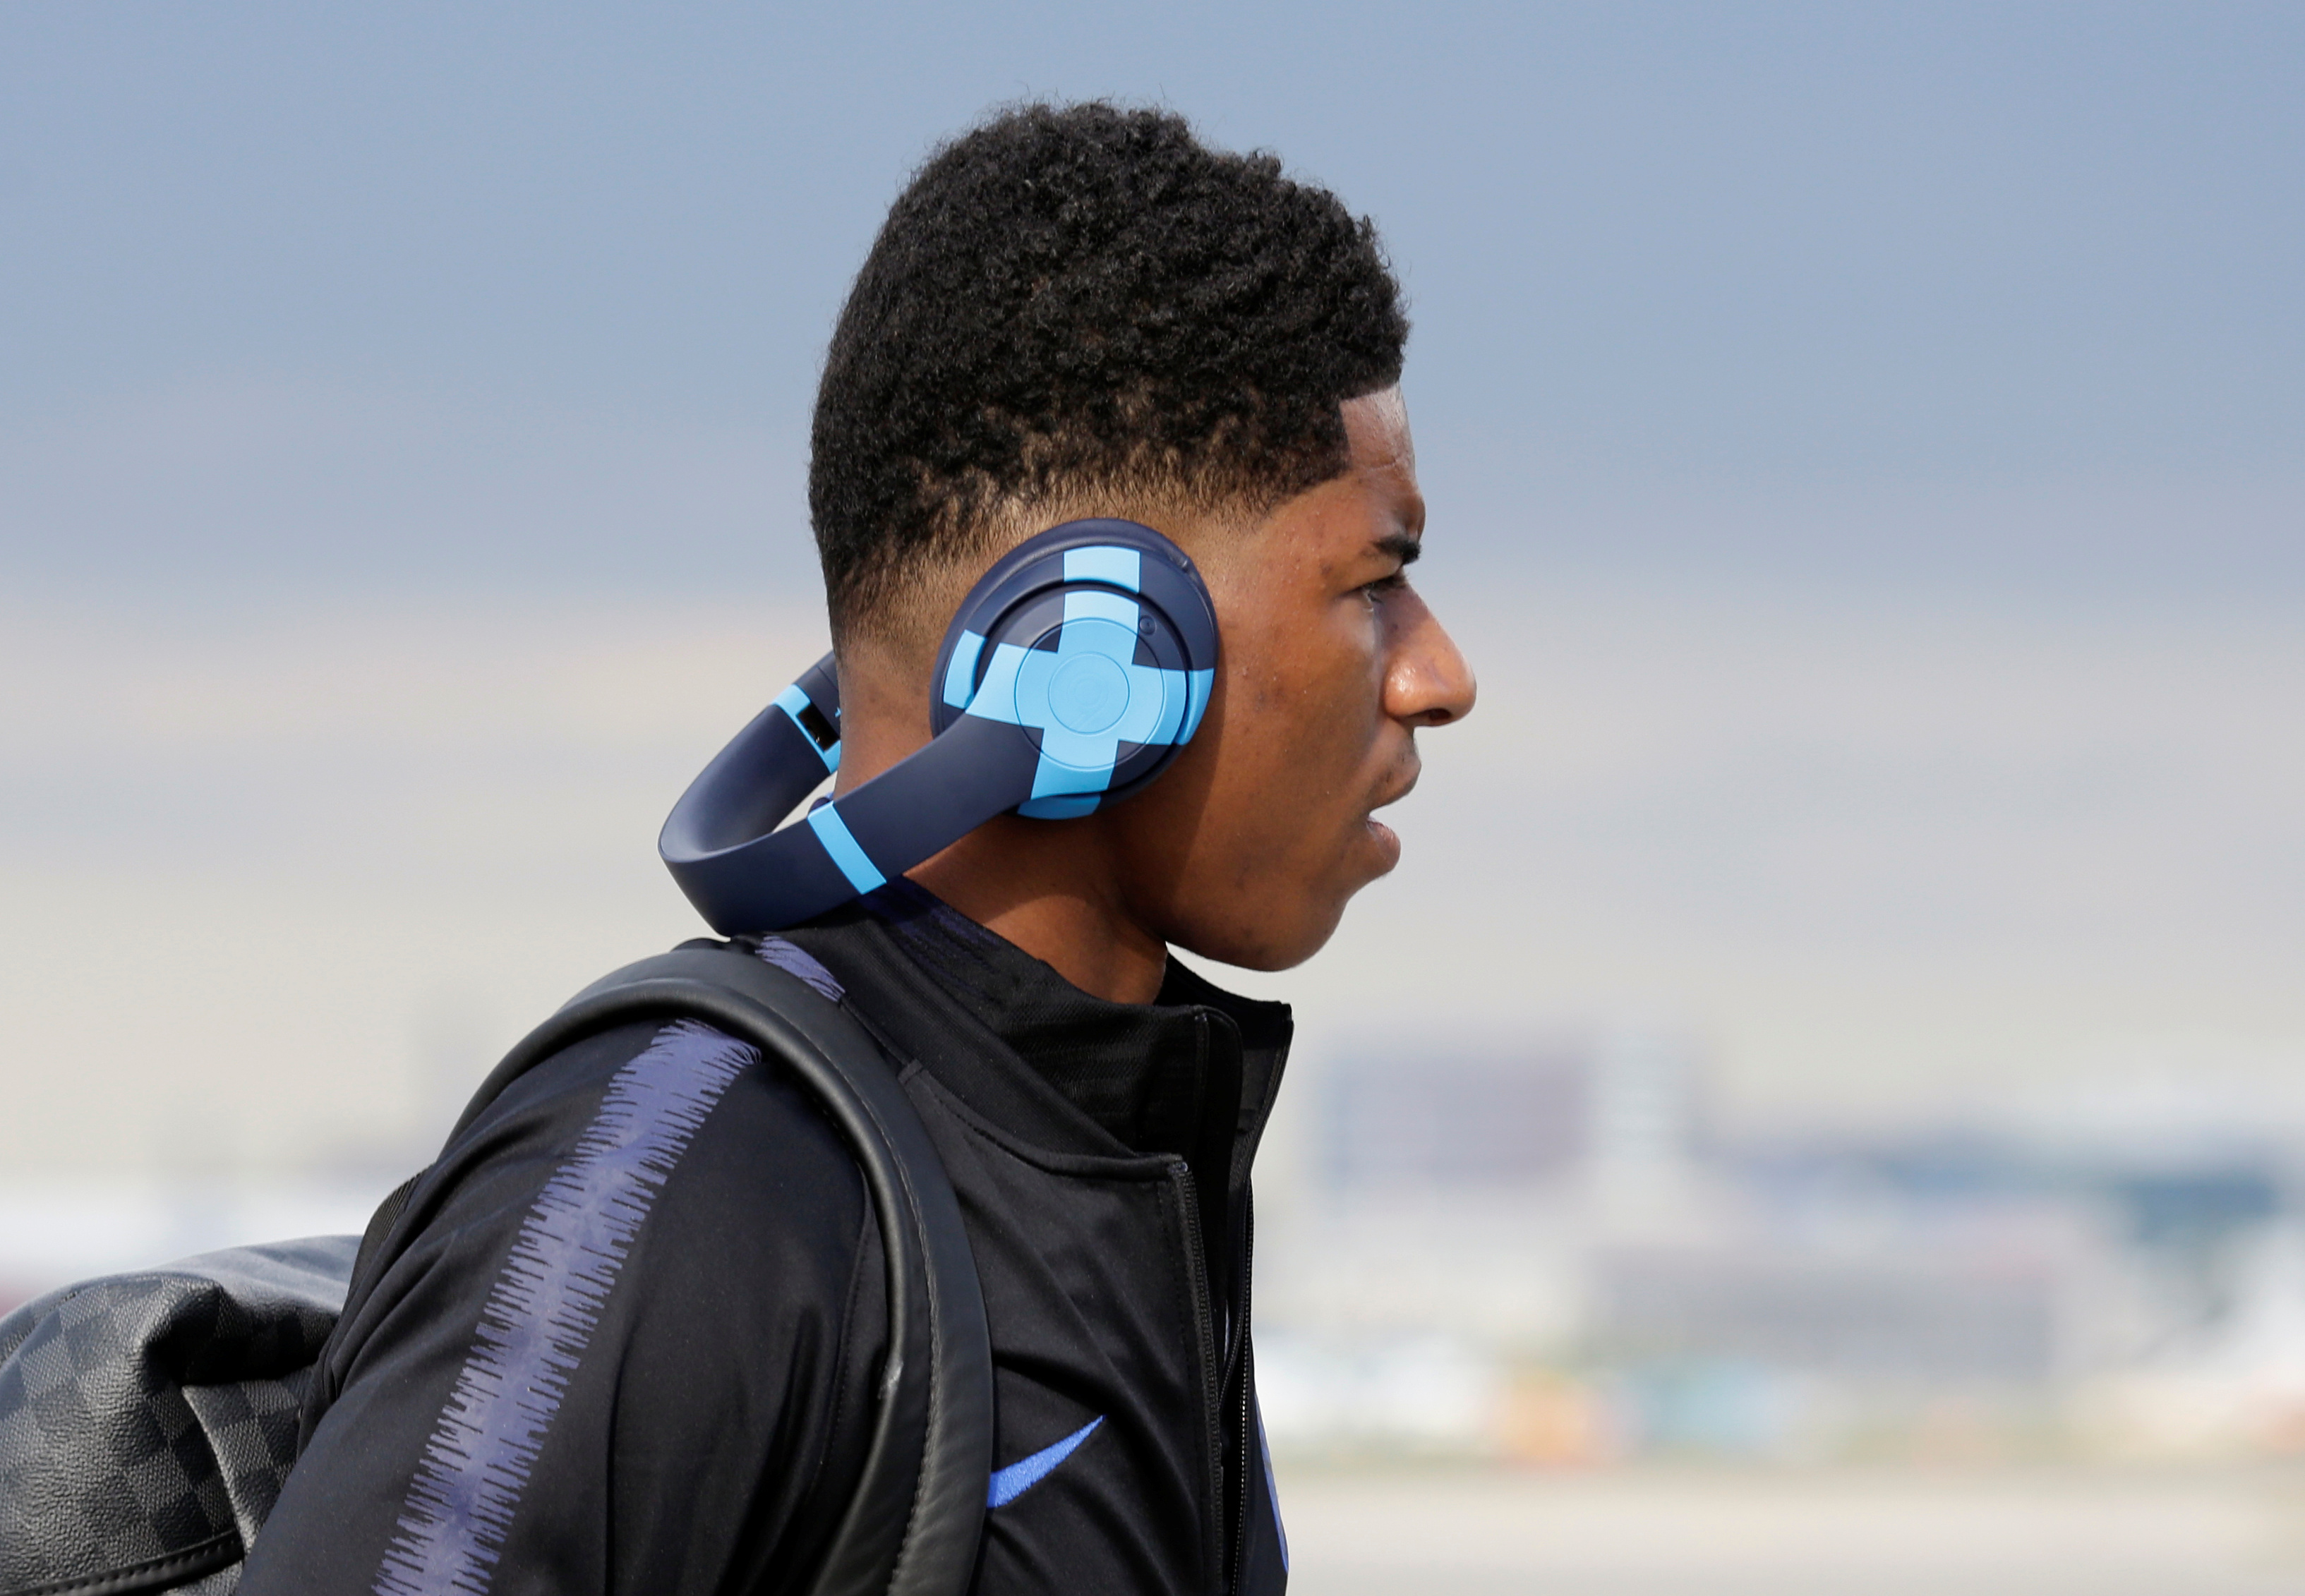 Soccer Football - World Cup - England Arrival - Pulkovo Airport, Saint Petersburg, Russia - June 12, 2018 England's Marcus Rashford during their arrival REUTERS/Anton Vaganov - RC12A62FCE10